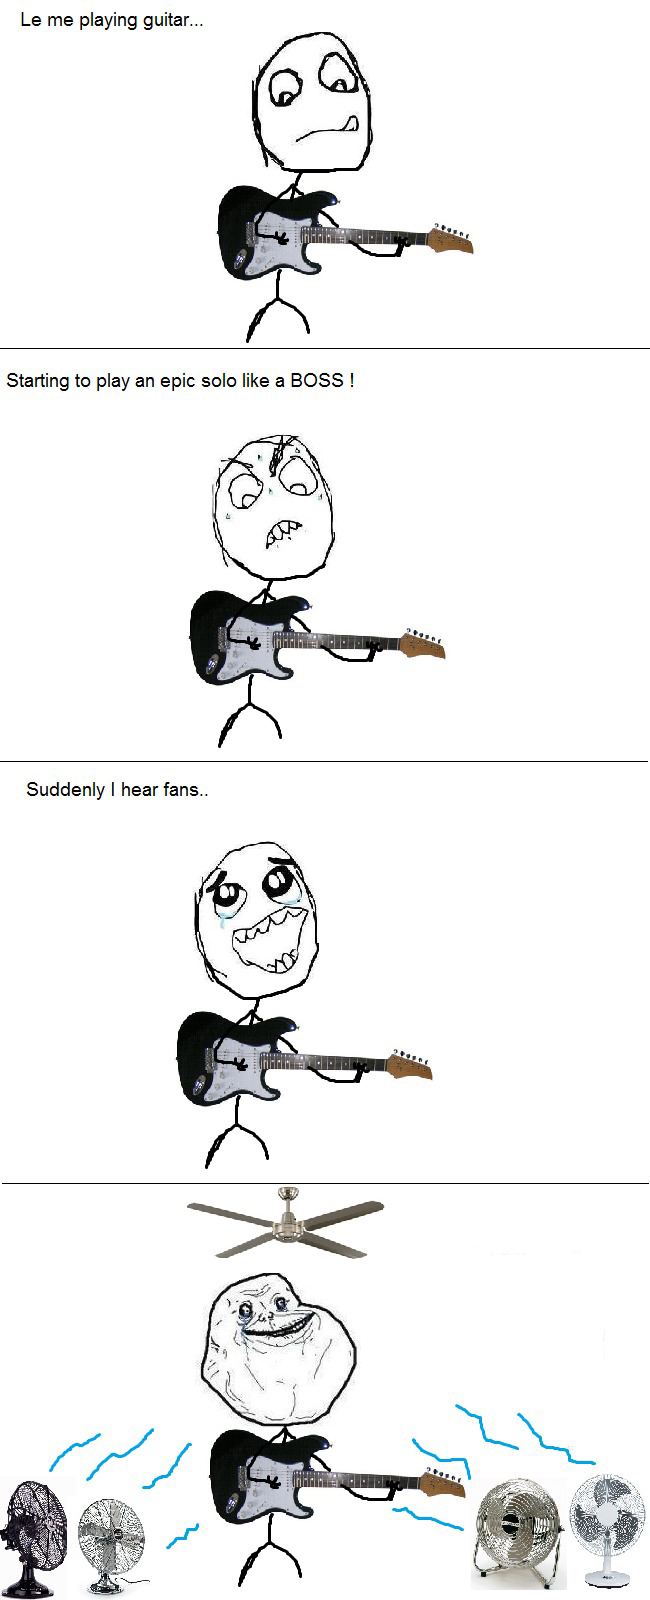 Playing Guitar Solo - Suddenly I Hear Fans - Forever Alone